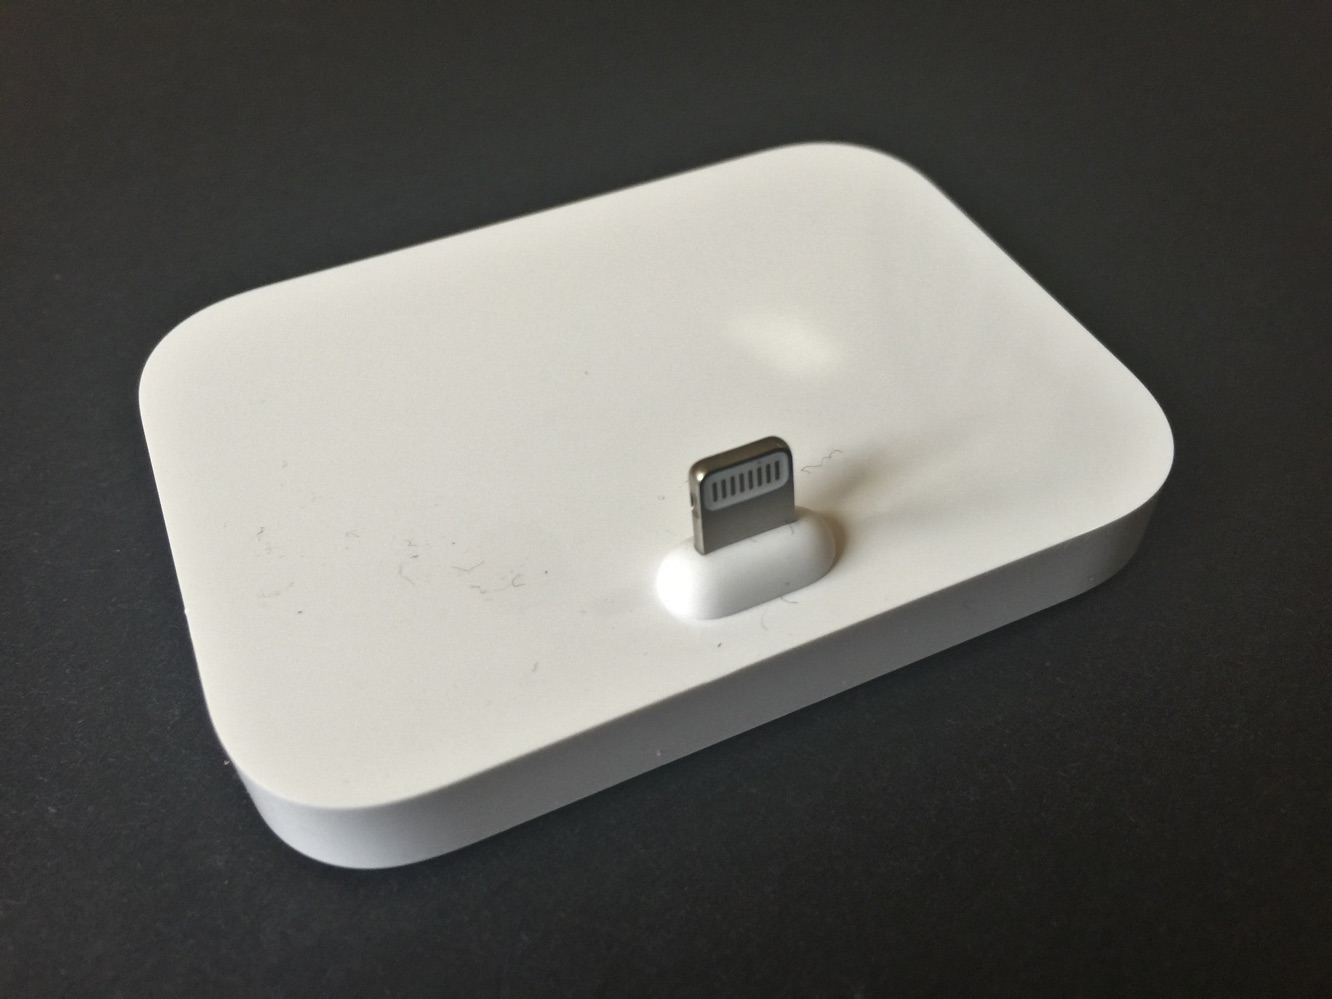 Review Apple IPhone Lightning Dock ILounge